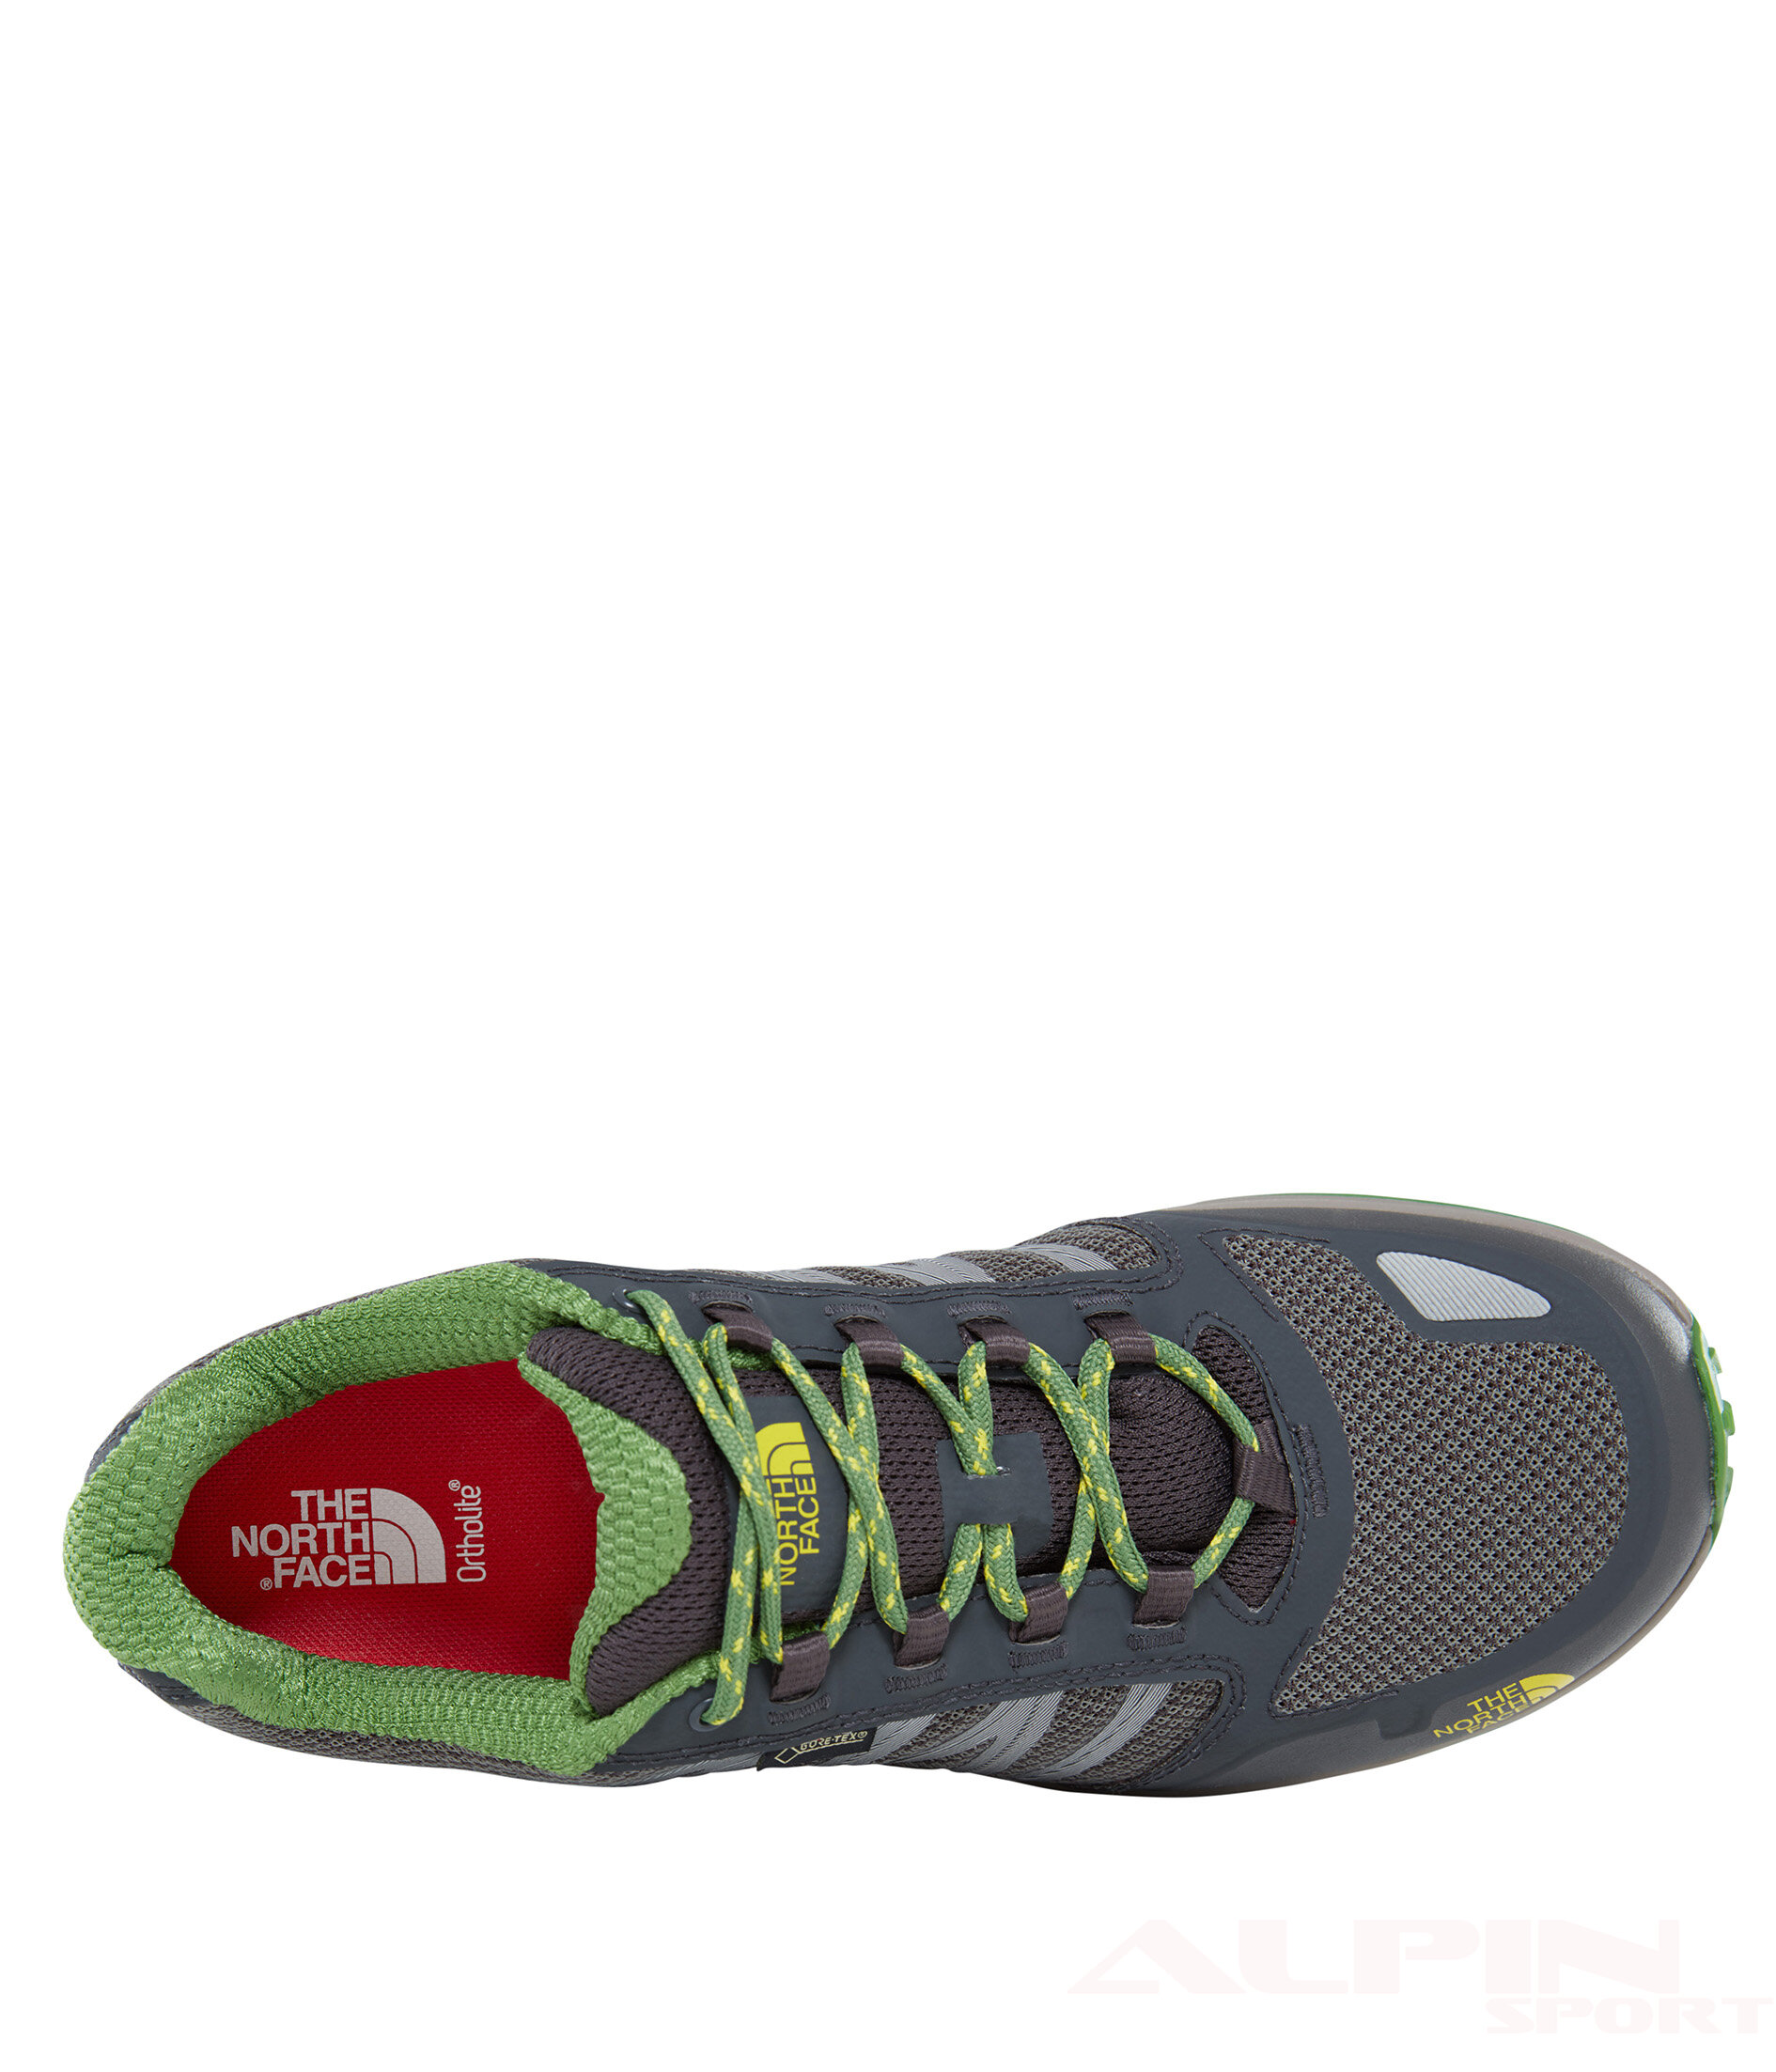 213d3107 ... Buty męskie THE NORTH FACE Litewave Fastpack GTX 009_LO_3FX4 4DR 1 ...